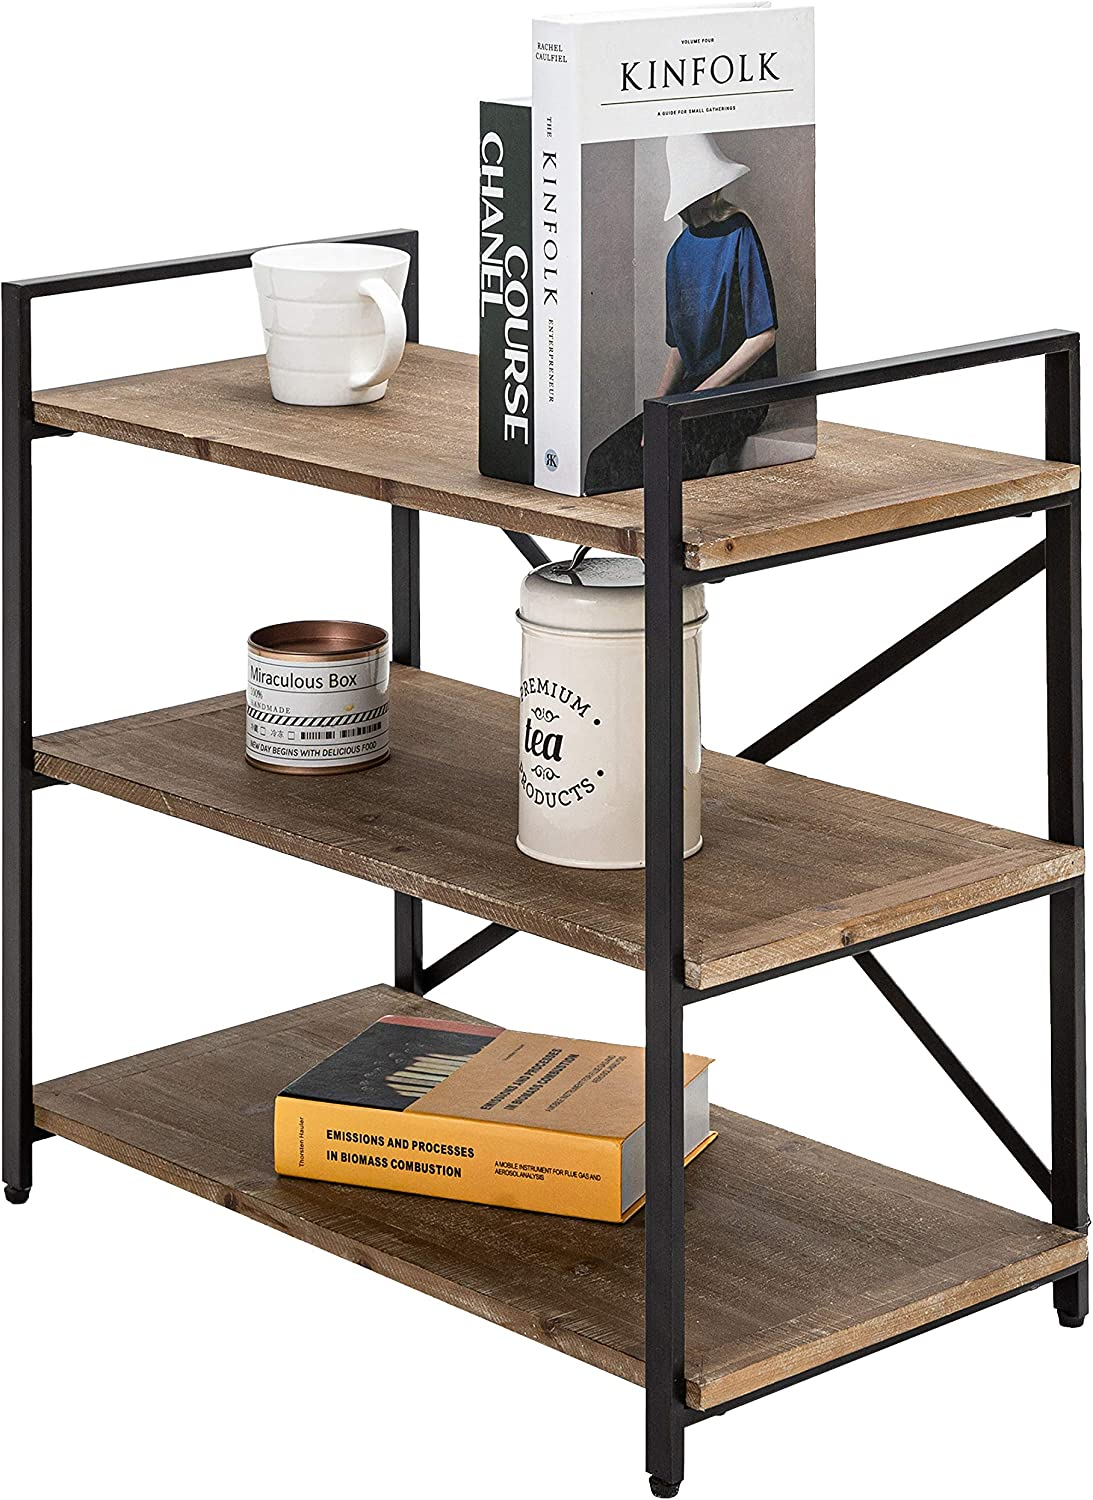 Bookcase Dark Brown Bookshelf 3 Tier Storage Rack Shelf for Office, Bathroom, Living Room